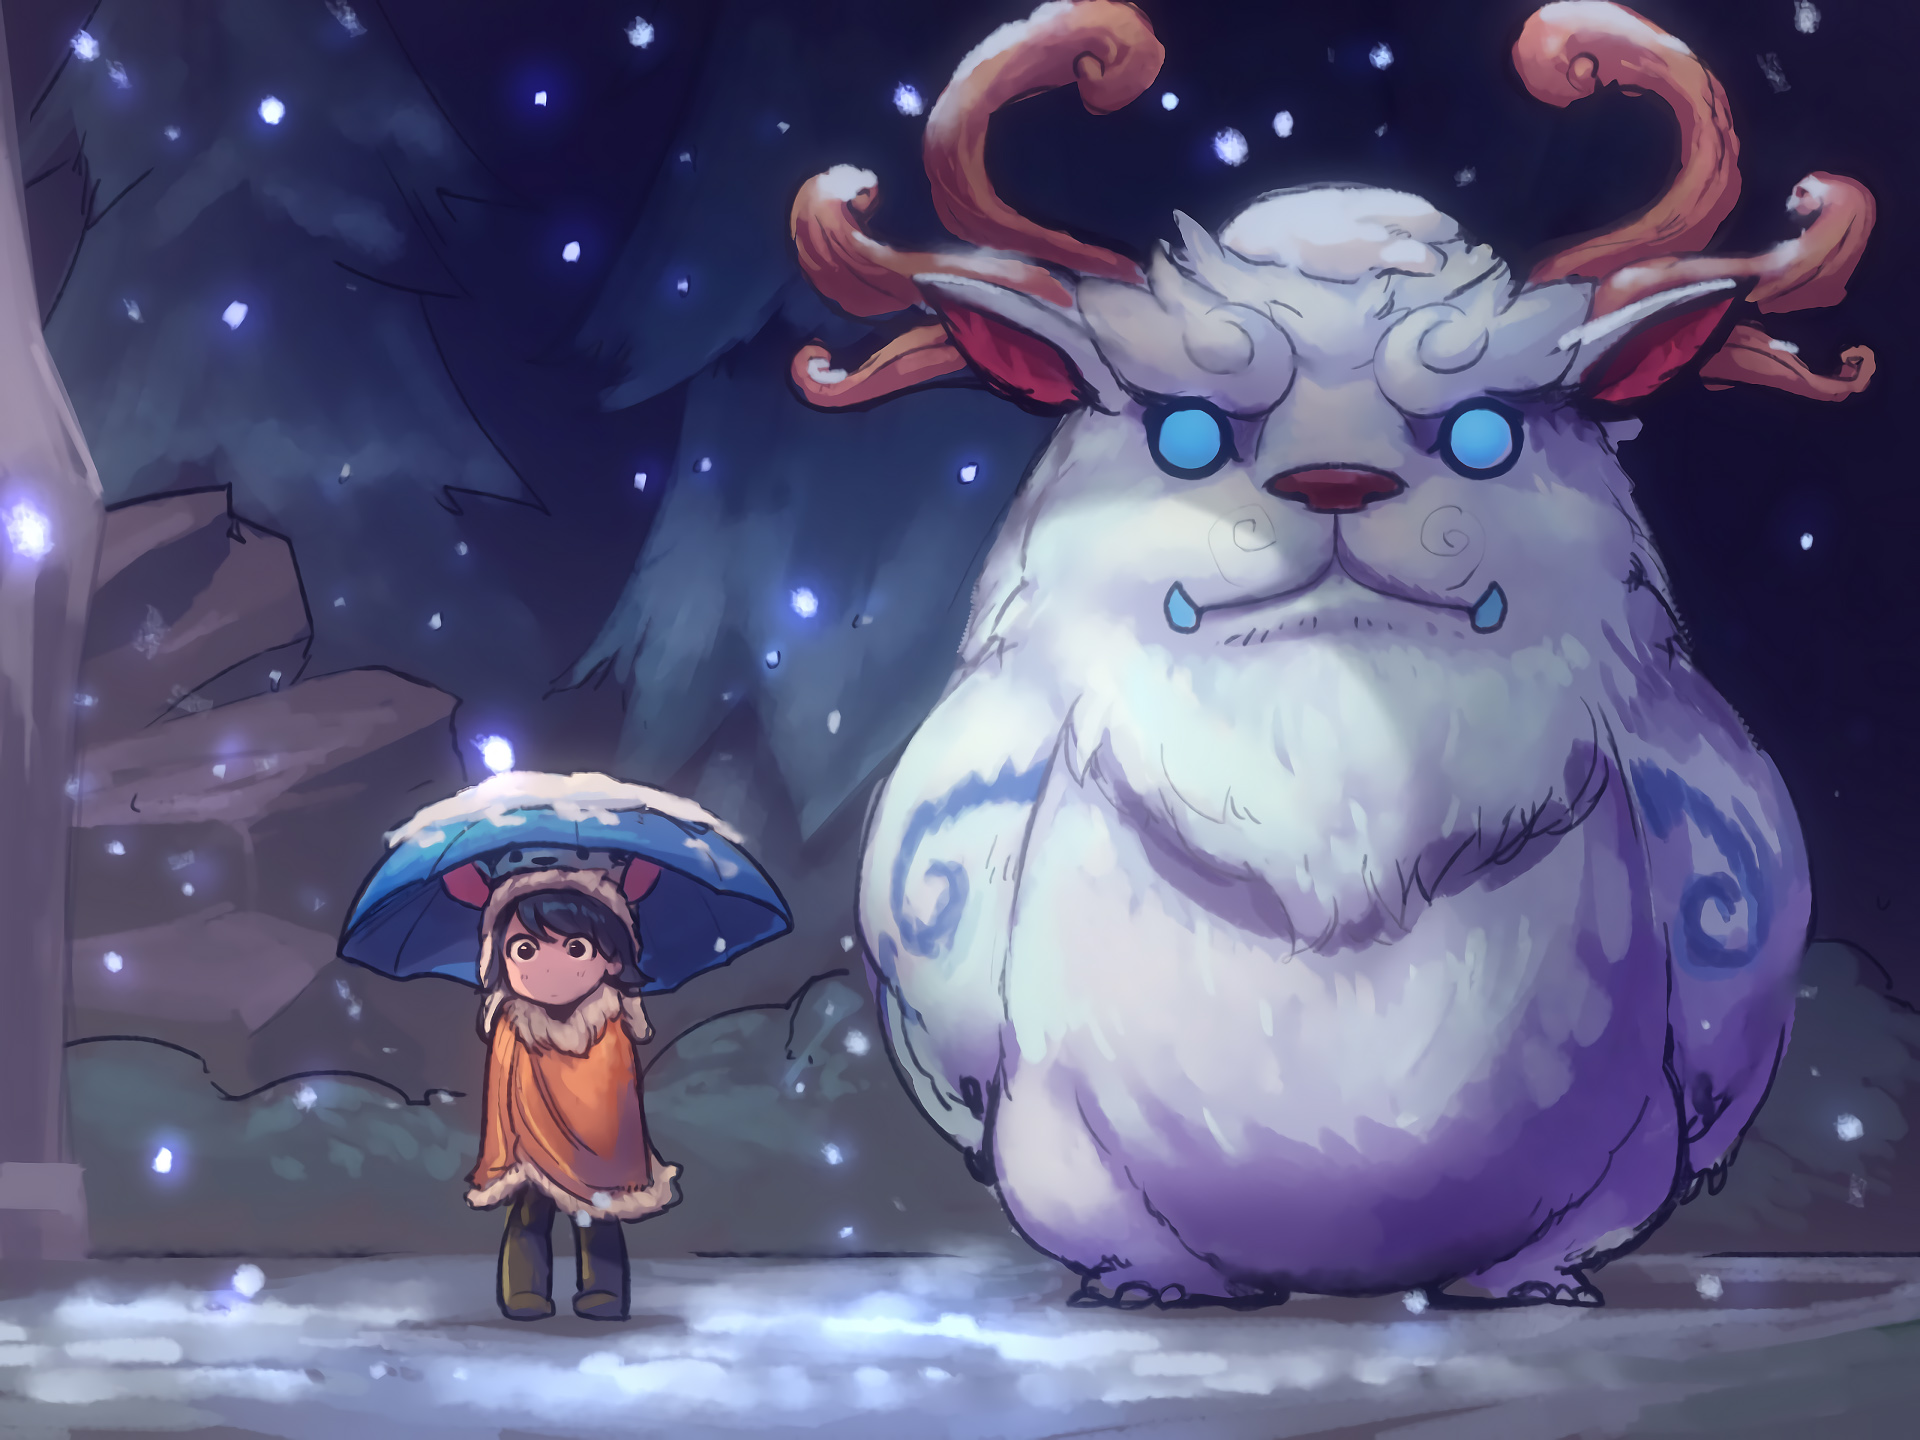 Nunu-Rework-Willump-by-ファントムⅨロウ